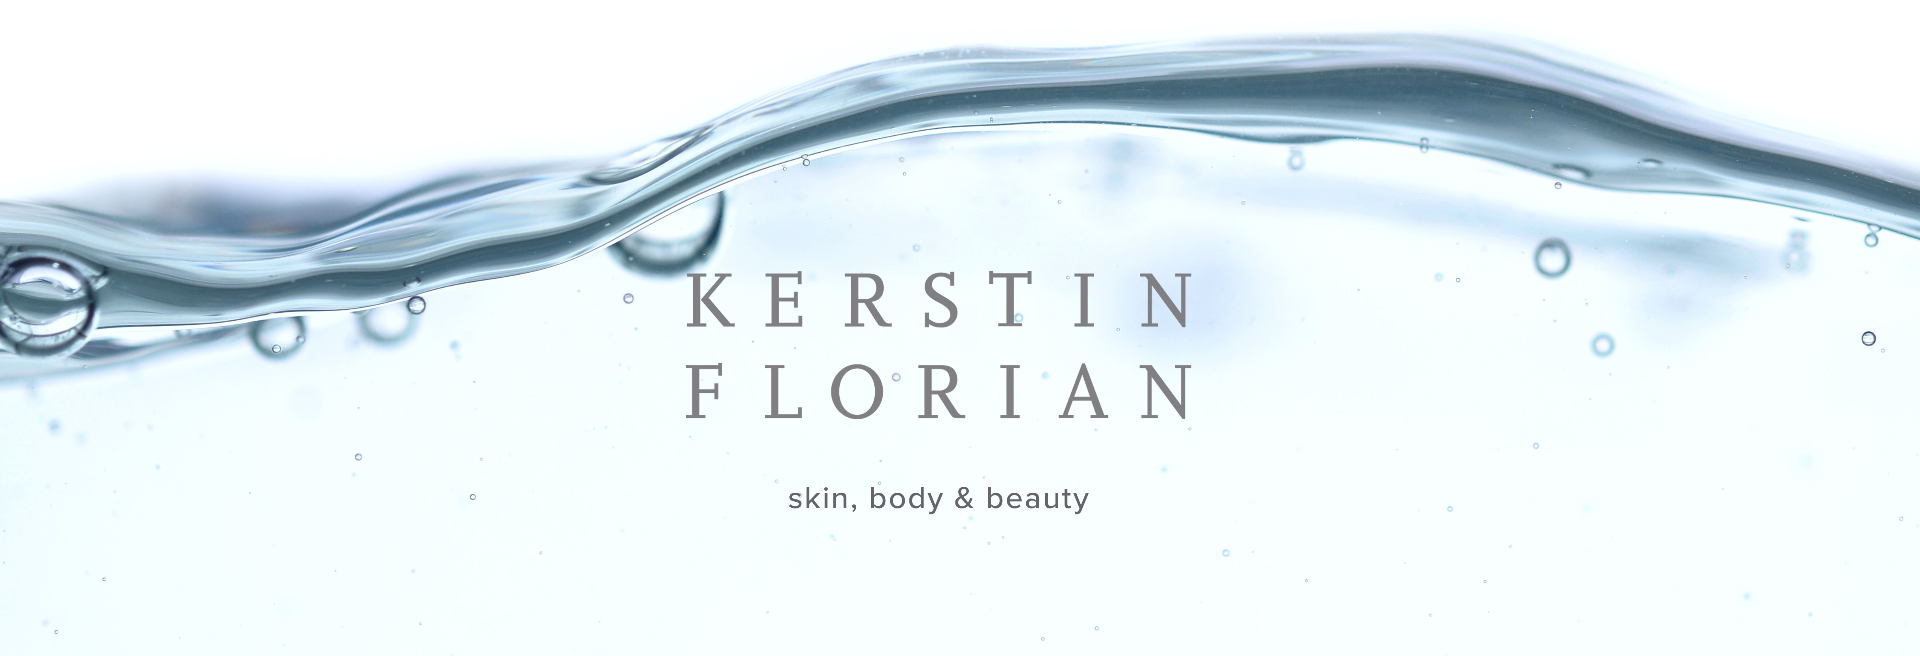 Kerstin Florian UK & Ireland Skin Body & Beauty